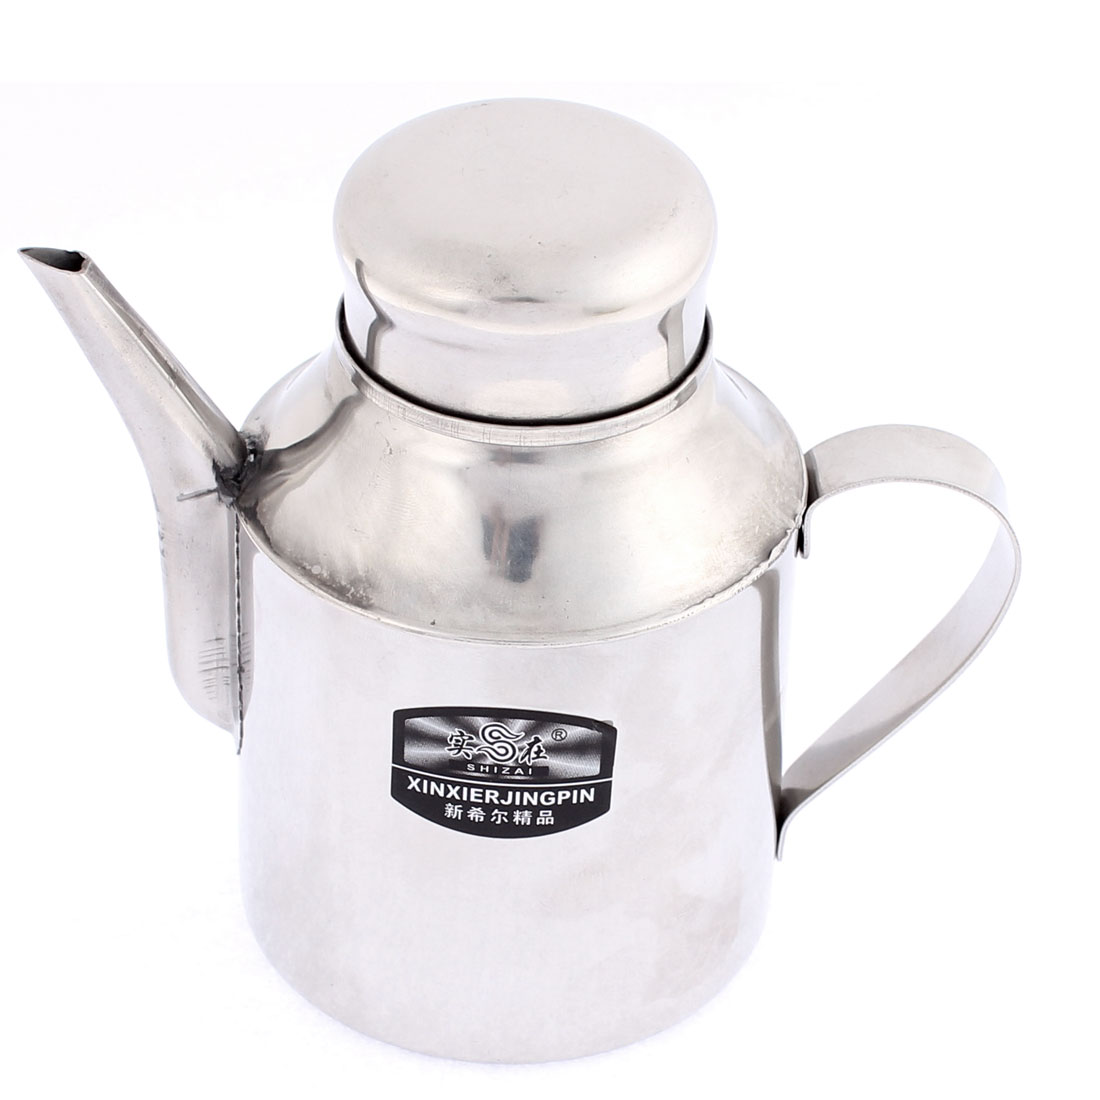 Stainless Steel Liquid Condiment Vinegar Soy Bottle Water Kettle Teakettle 330ml